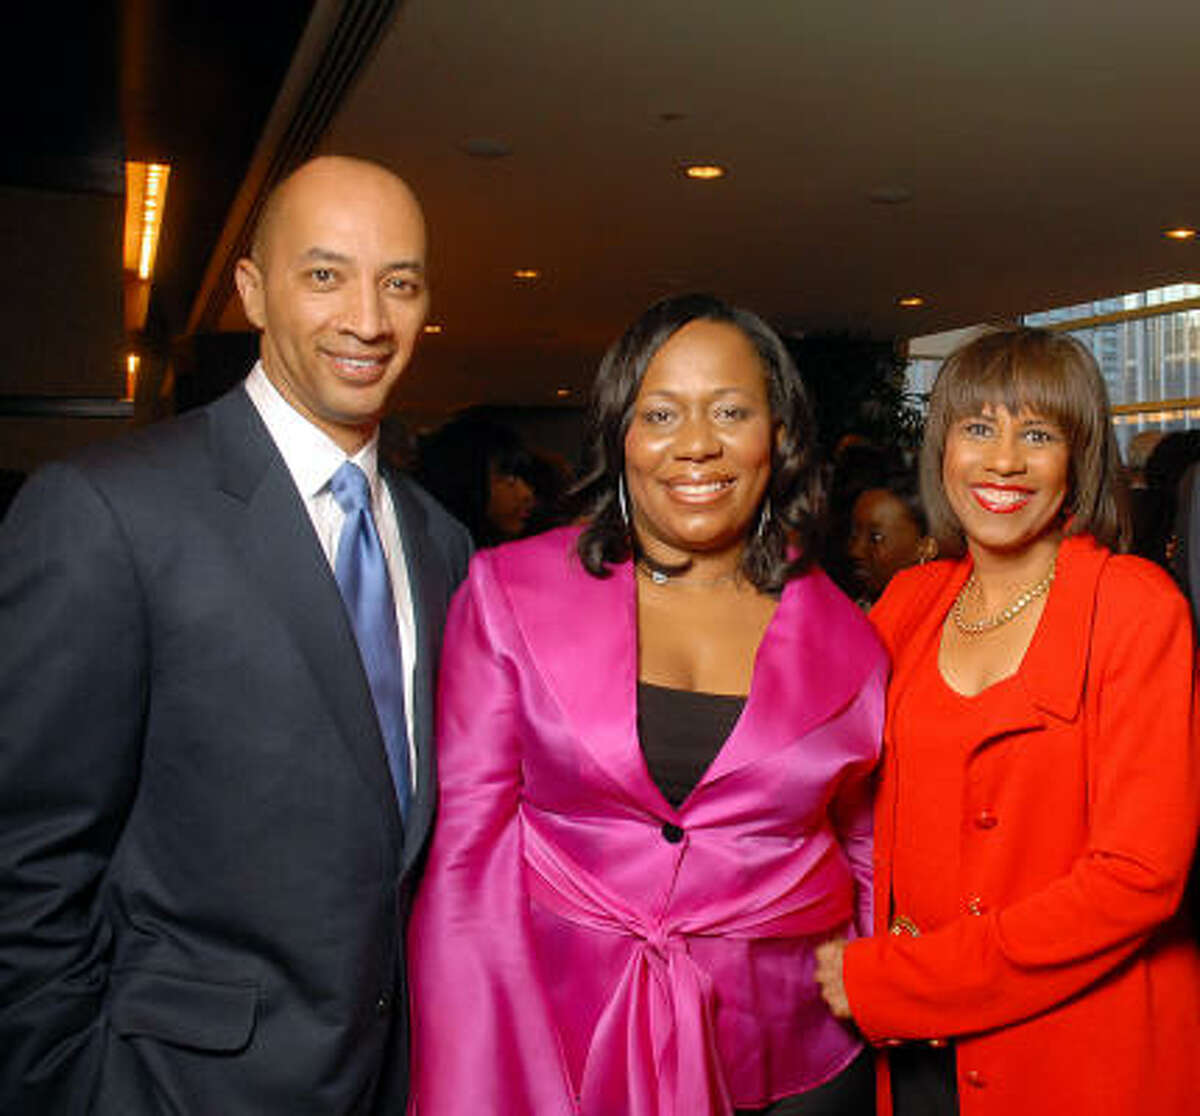 Byron Pitts, ReShonda Tate Billingsley and Melanie Lawson, right